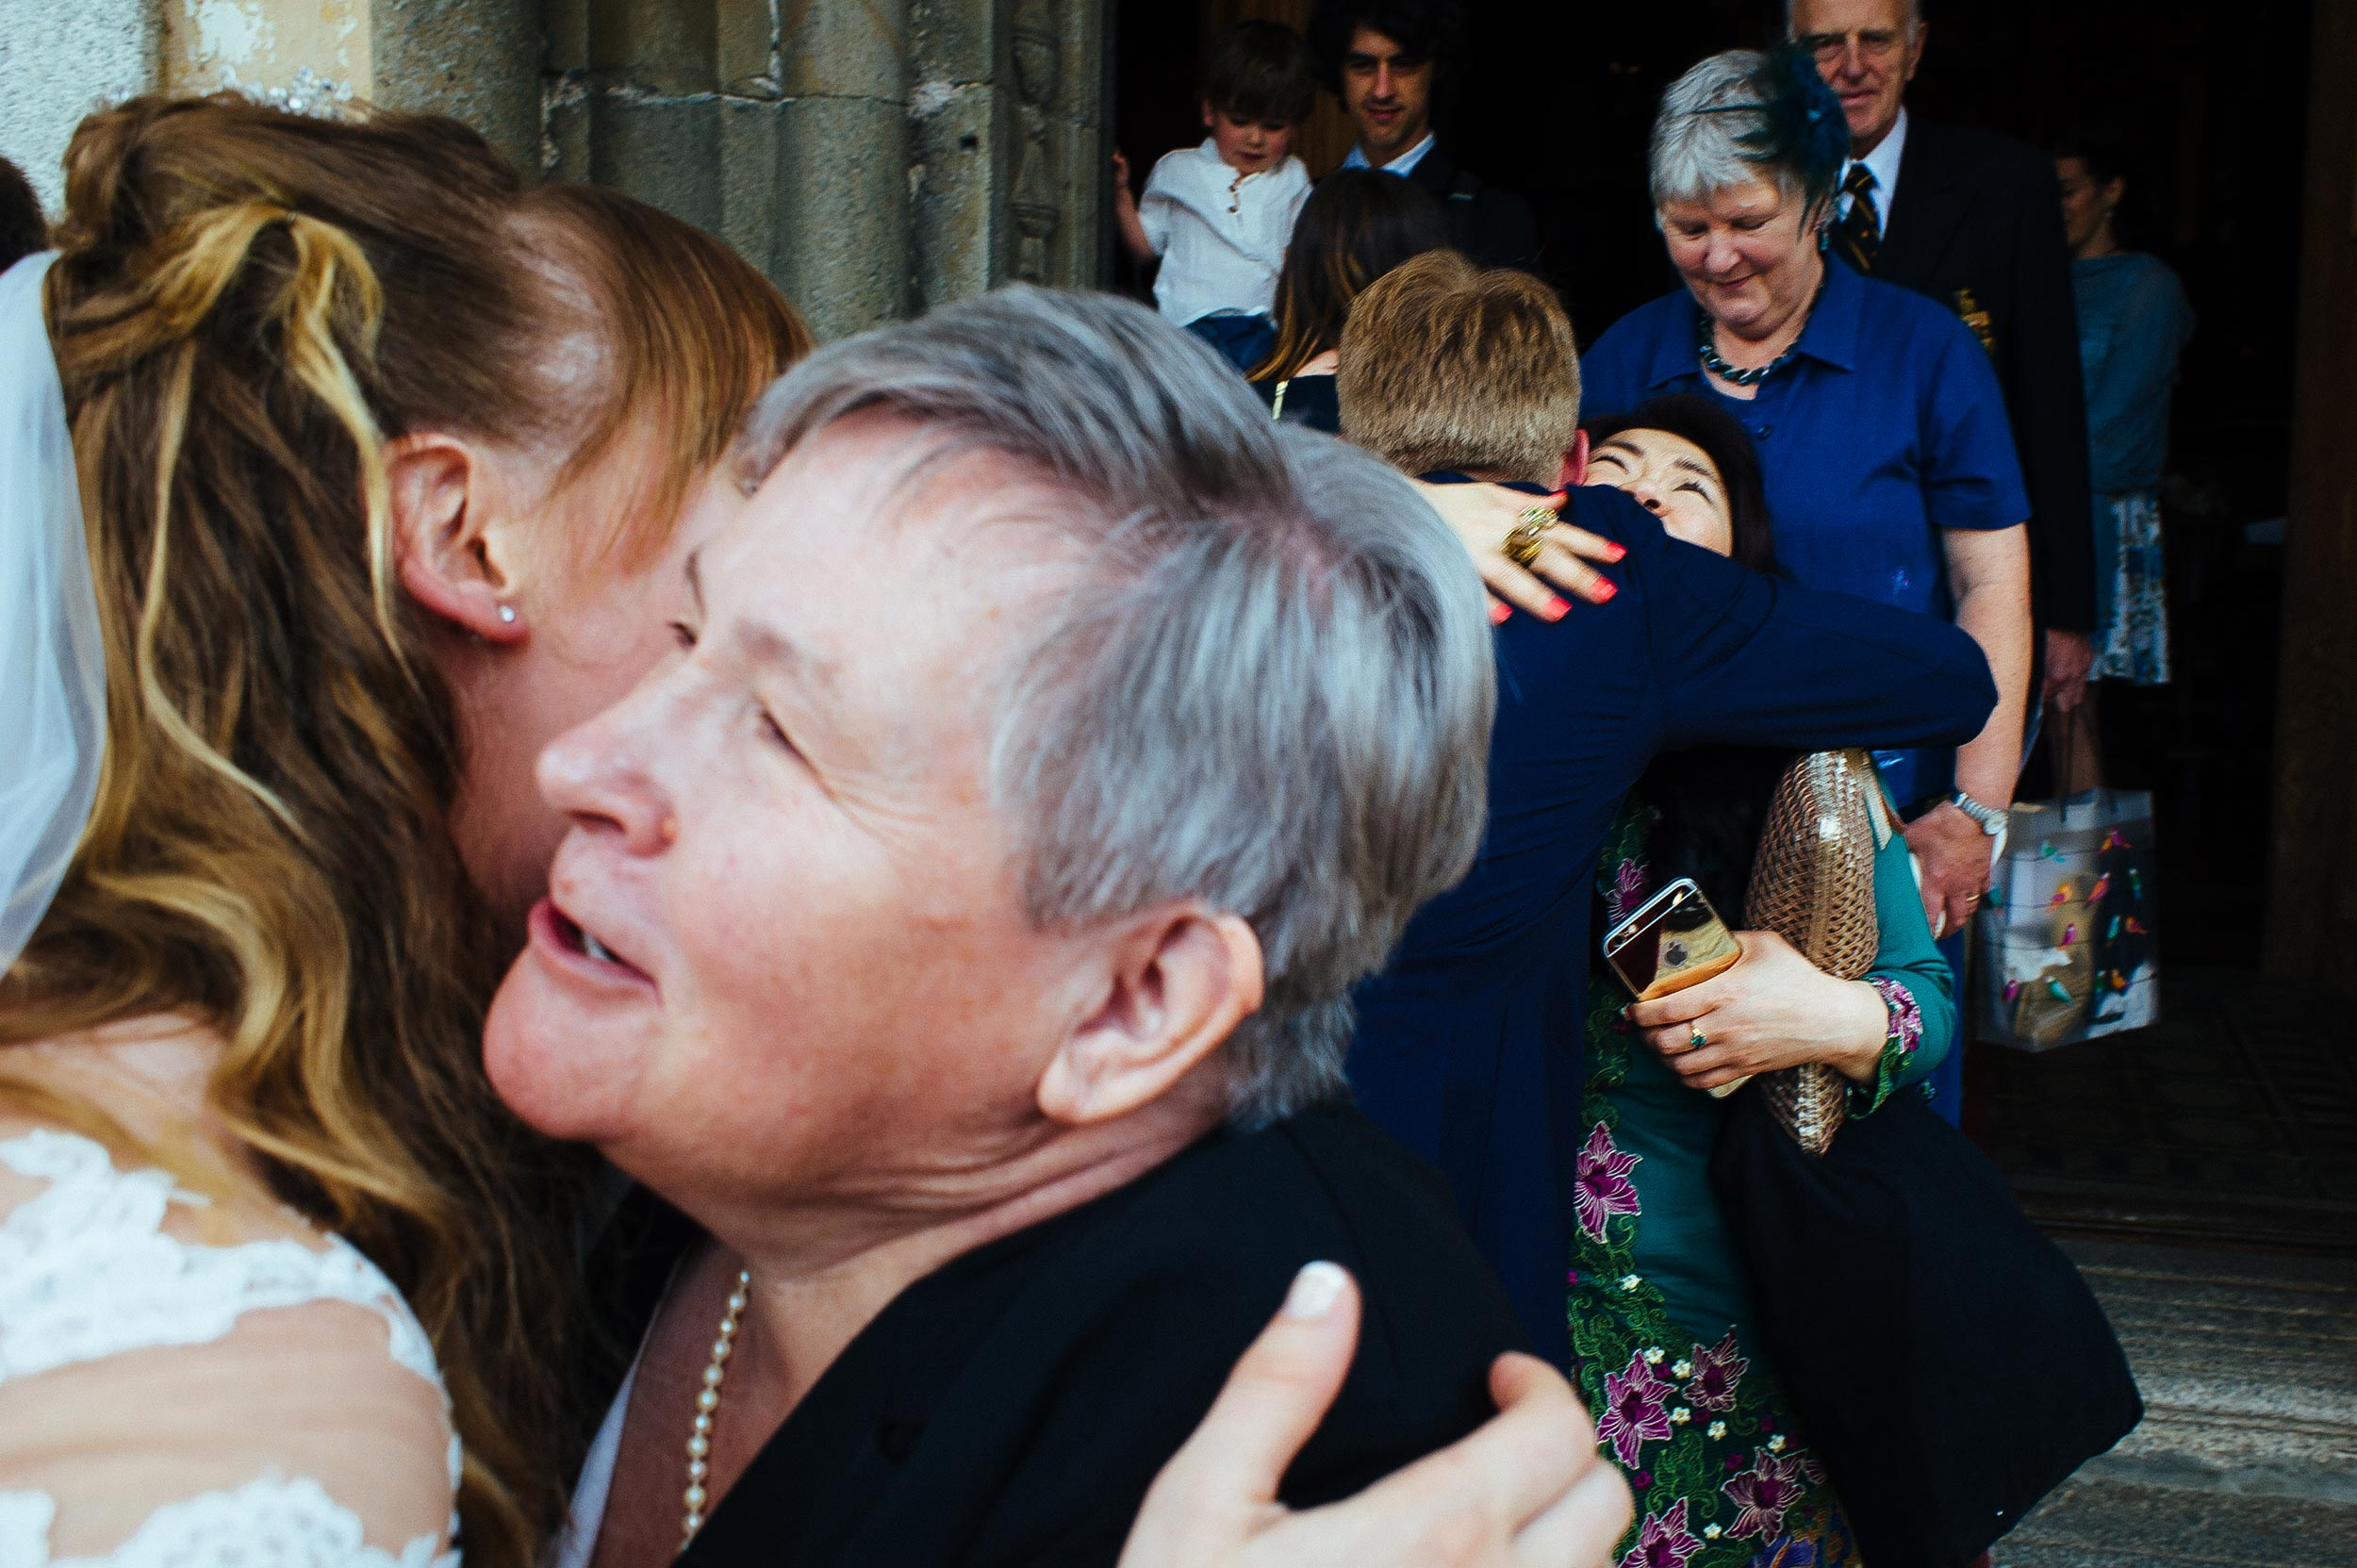 bride-and-groom-kissing-people-outside-the-church-wedding-lake-orta-italy.jpg